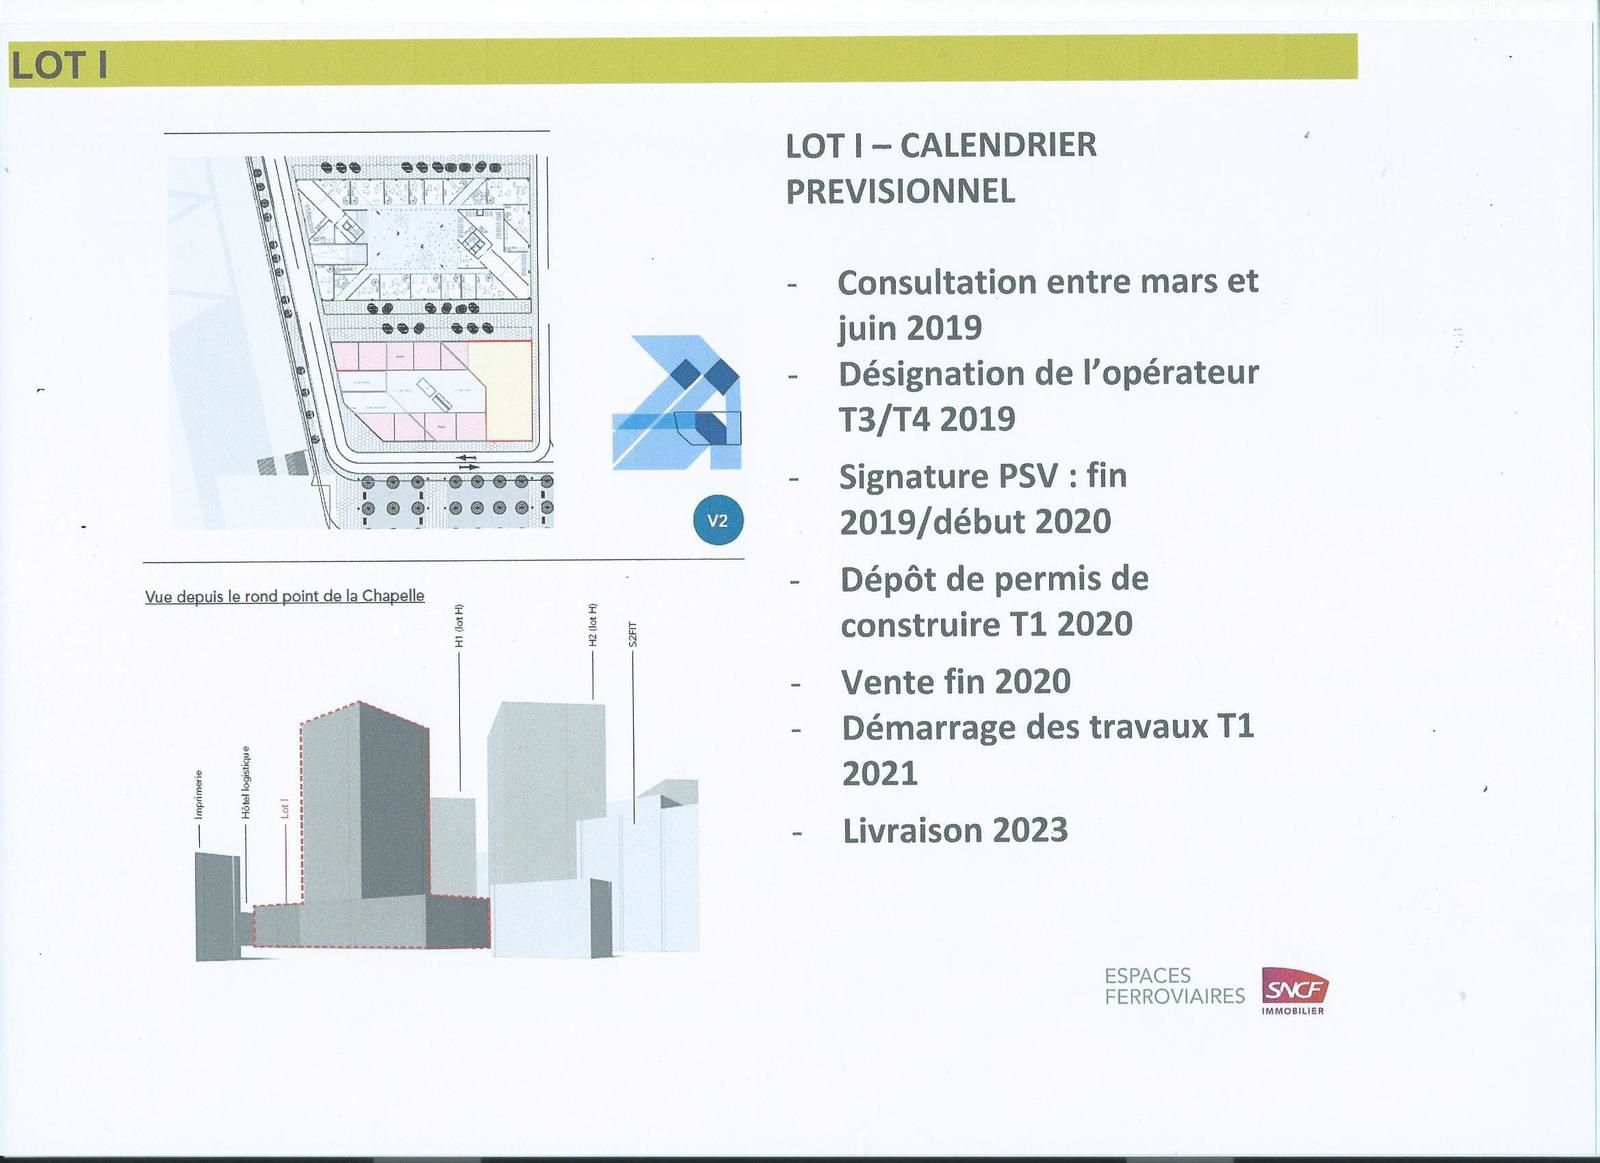 Chapelle International : calendrier de mise en oeuvre du lot I  -  Document Espaces Ferroviaires.